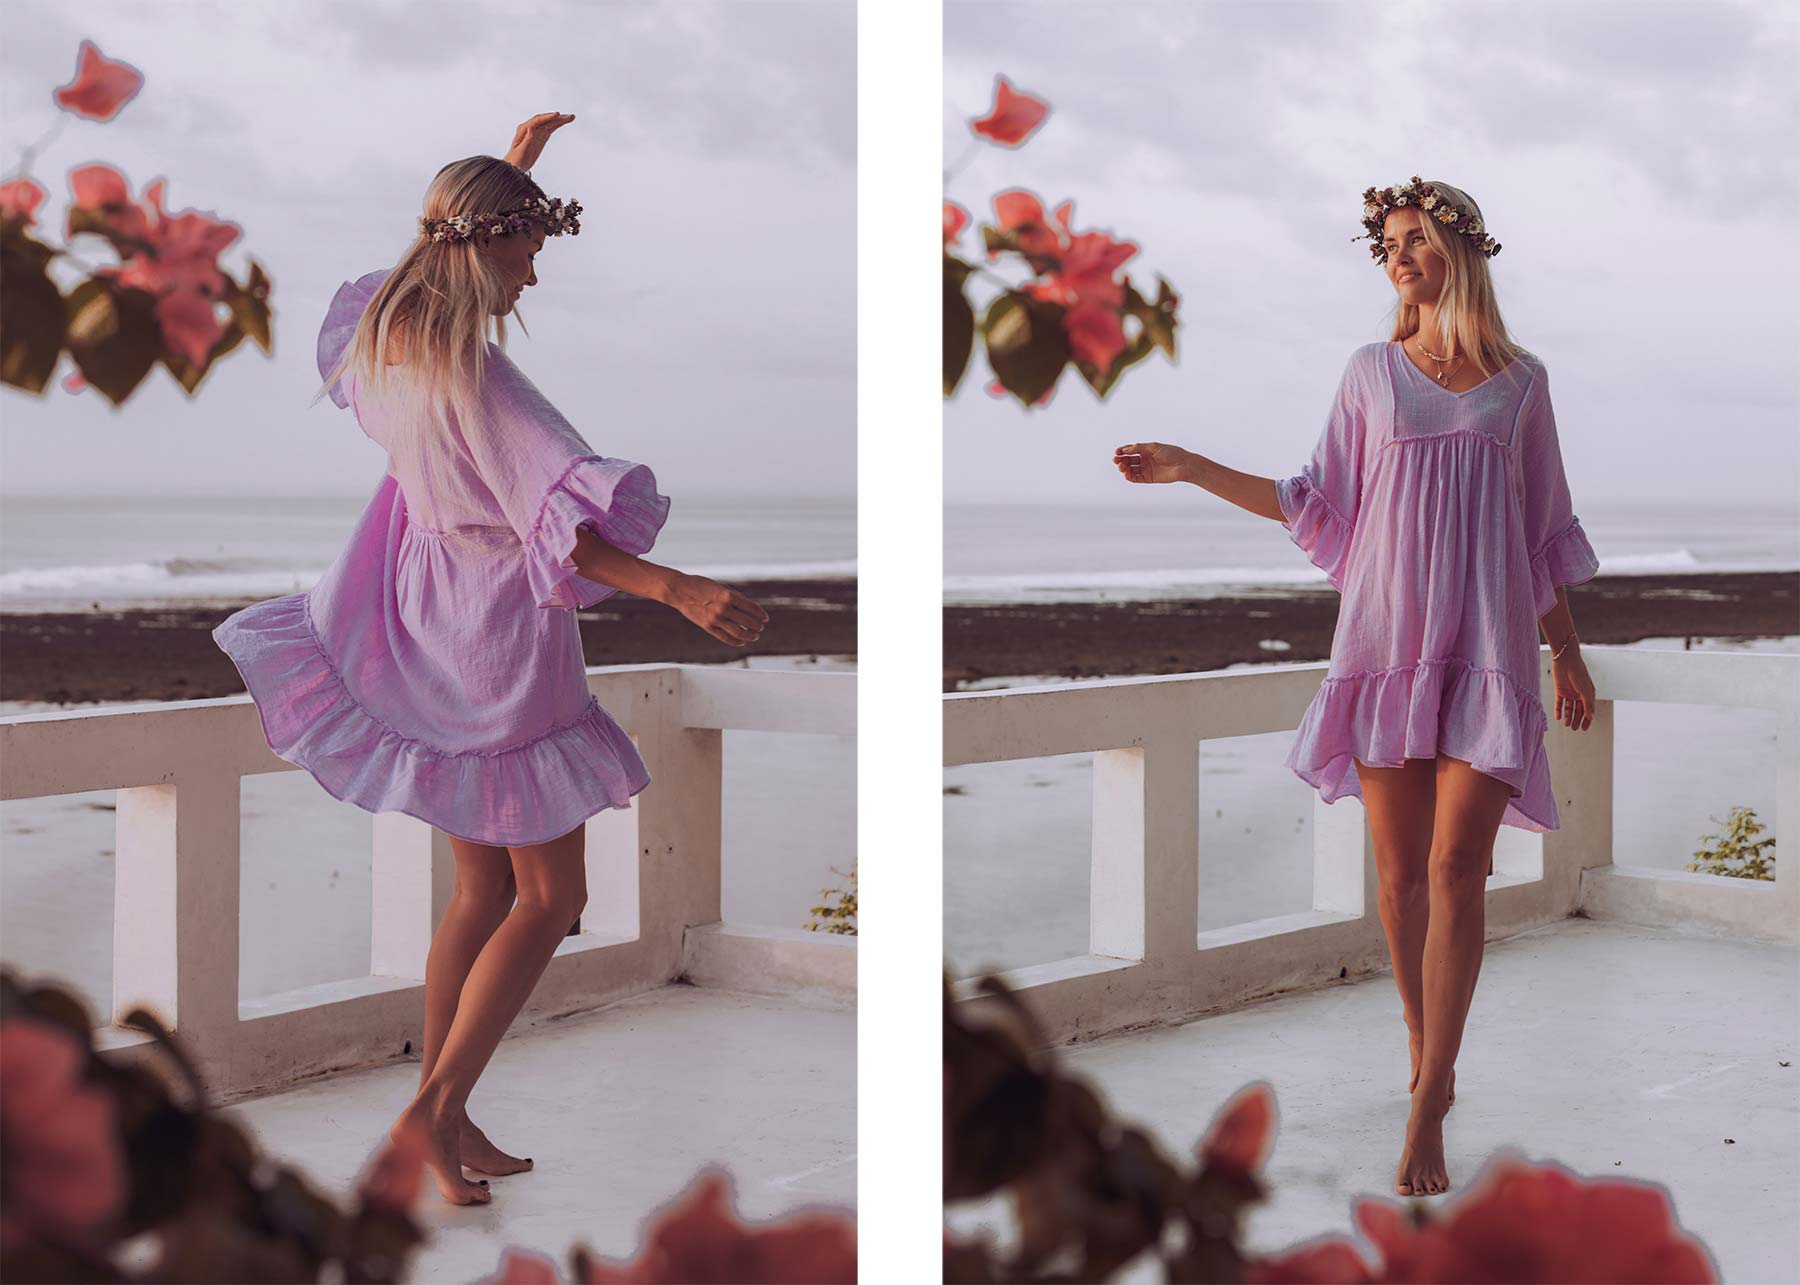 ROVE_MAJA_mariefeandjakesnow_lavender_cotton_island_holiday_dress